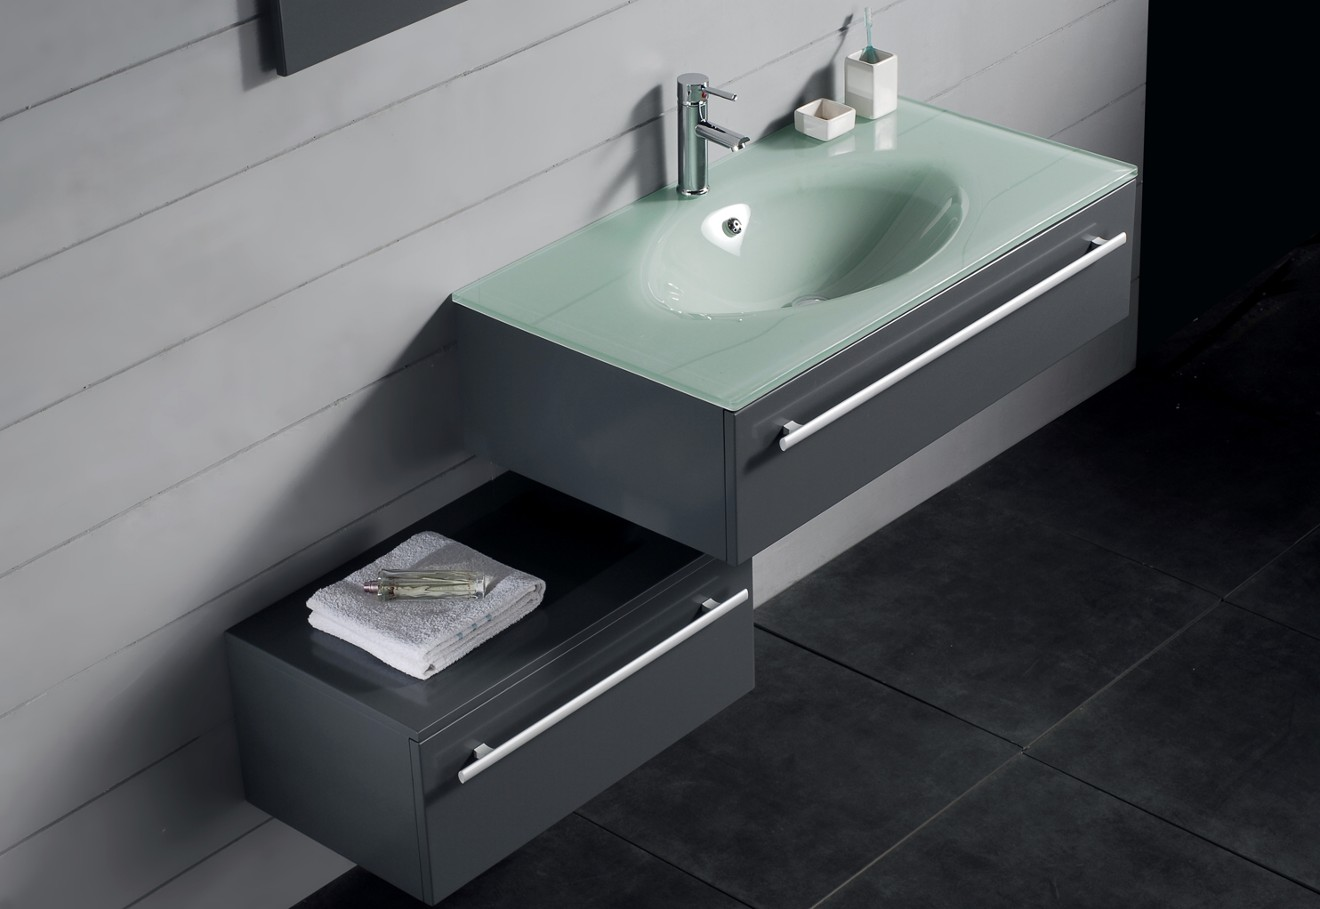 Angelic Design of Contemporary Bathroom Vanities With Stainless Steel Faucet